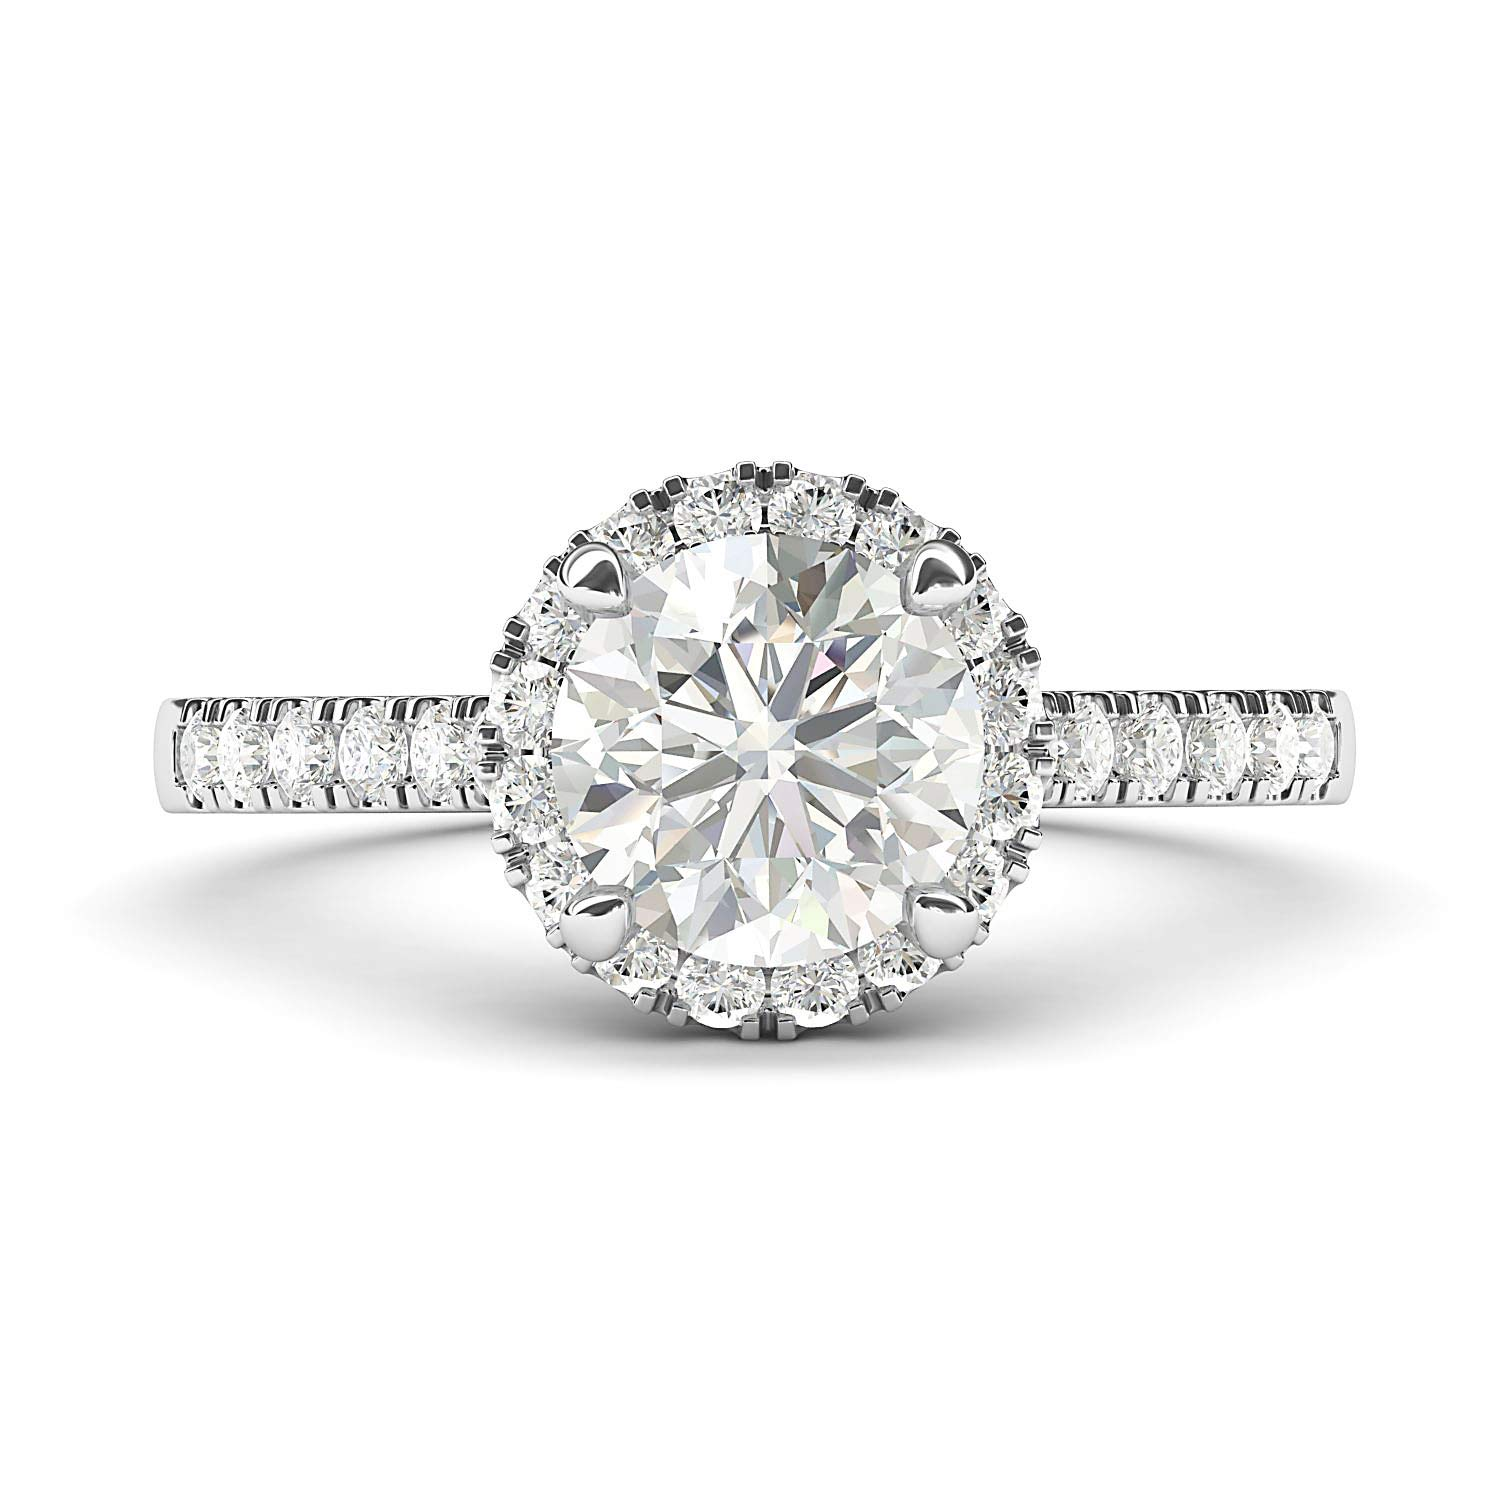 14k White Gold Classic Simulated Round Brilliant Cut Diamond Halo Engagement Ring with Side Stones (6.5) by THELANDA (Image #1)